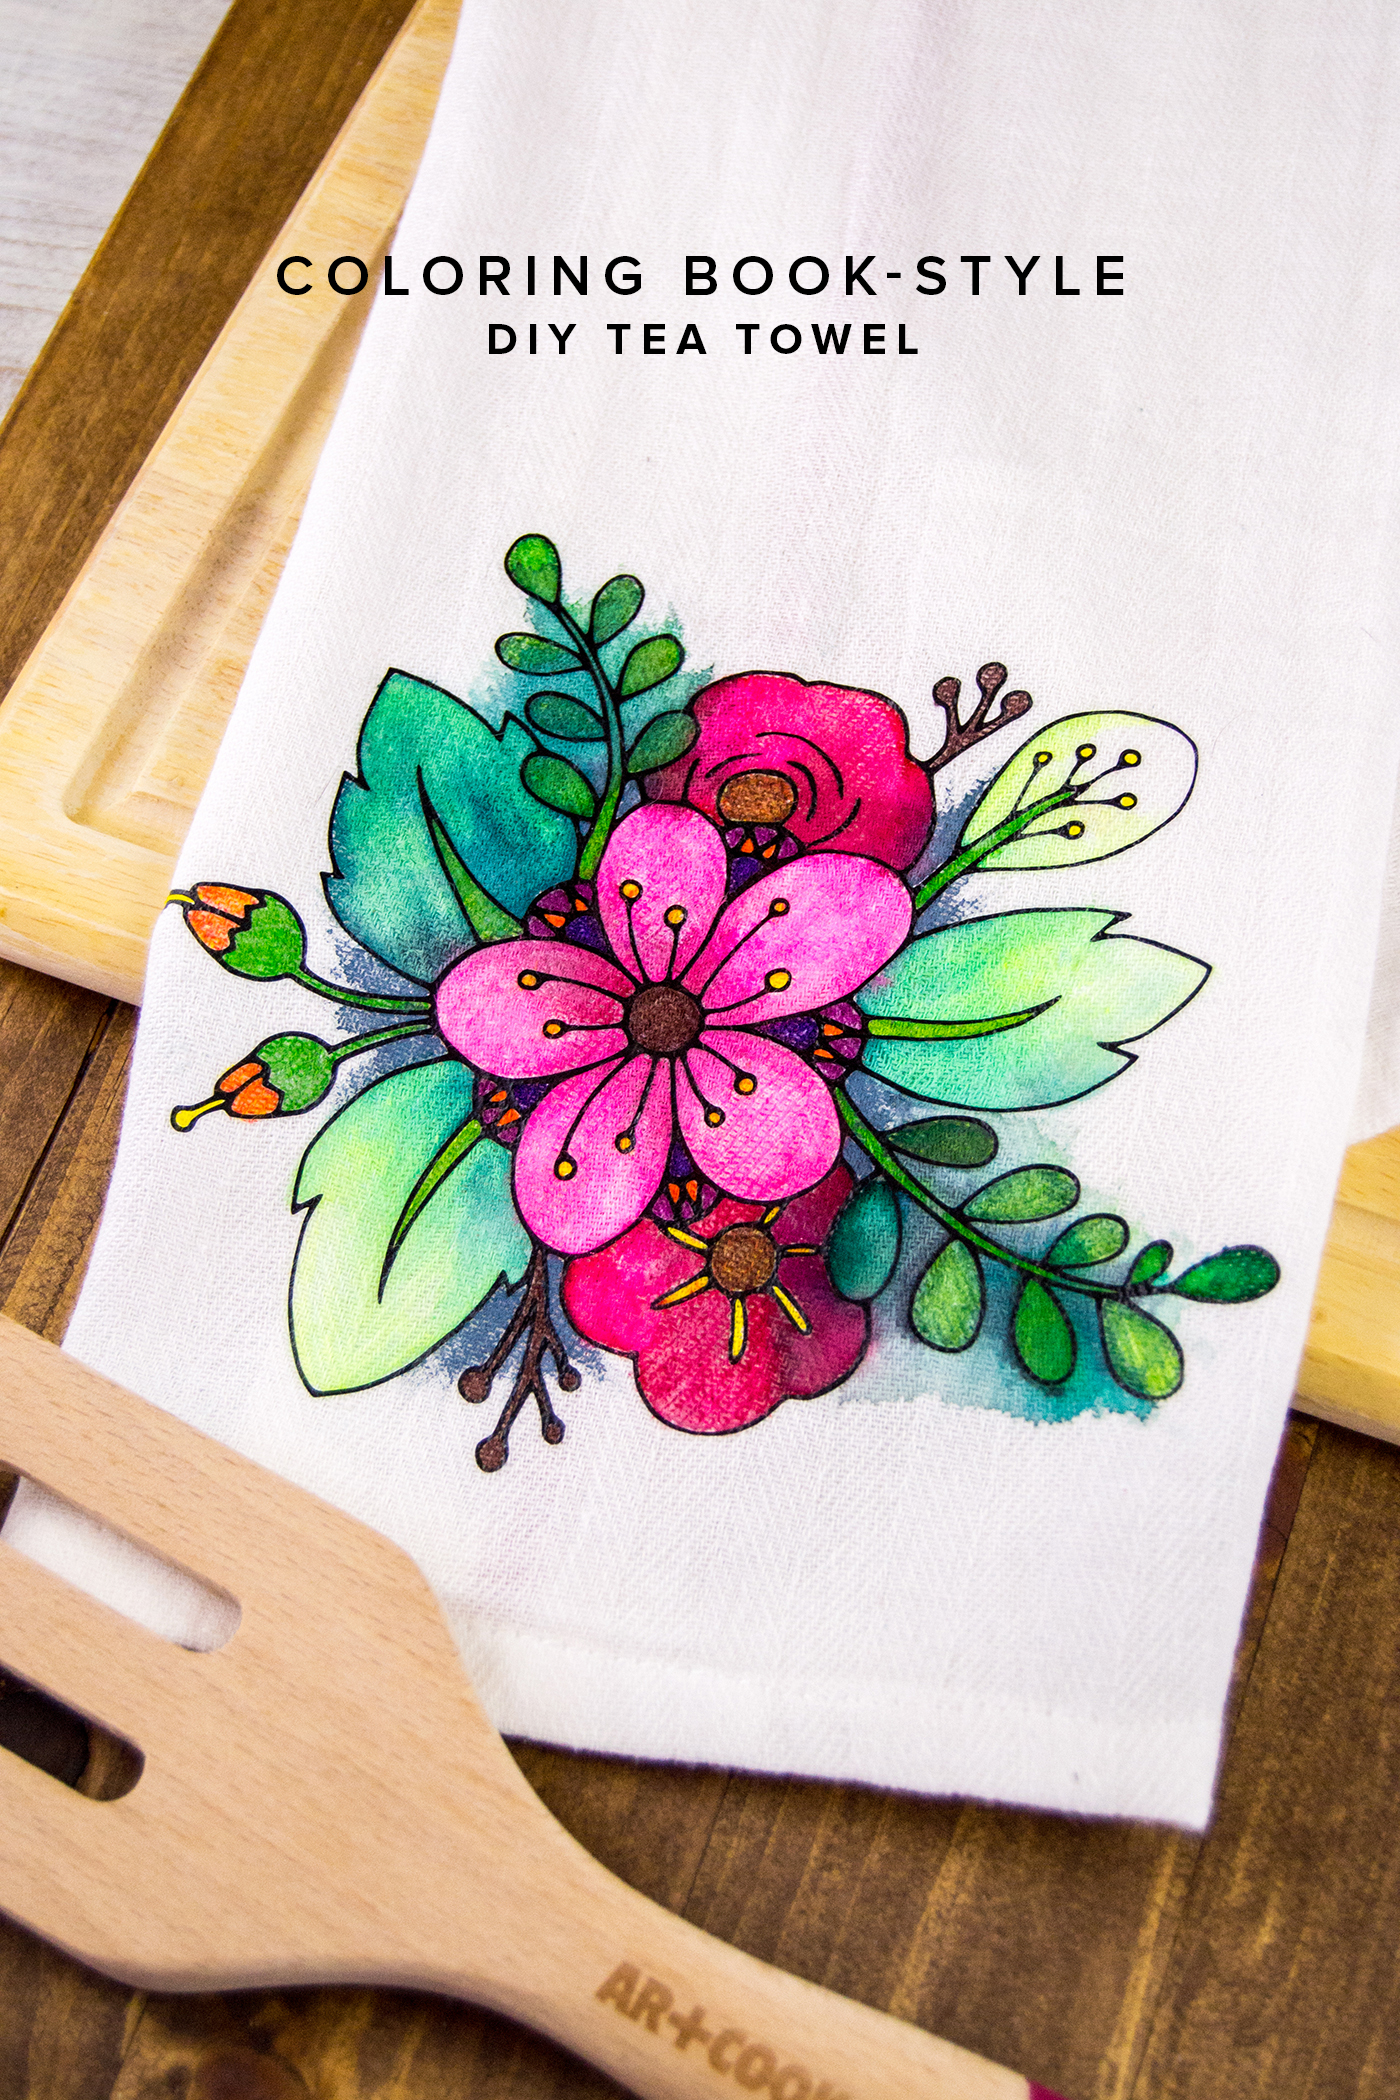 Floral Coloring Book Styled DIY Tea Towel diycandy